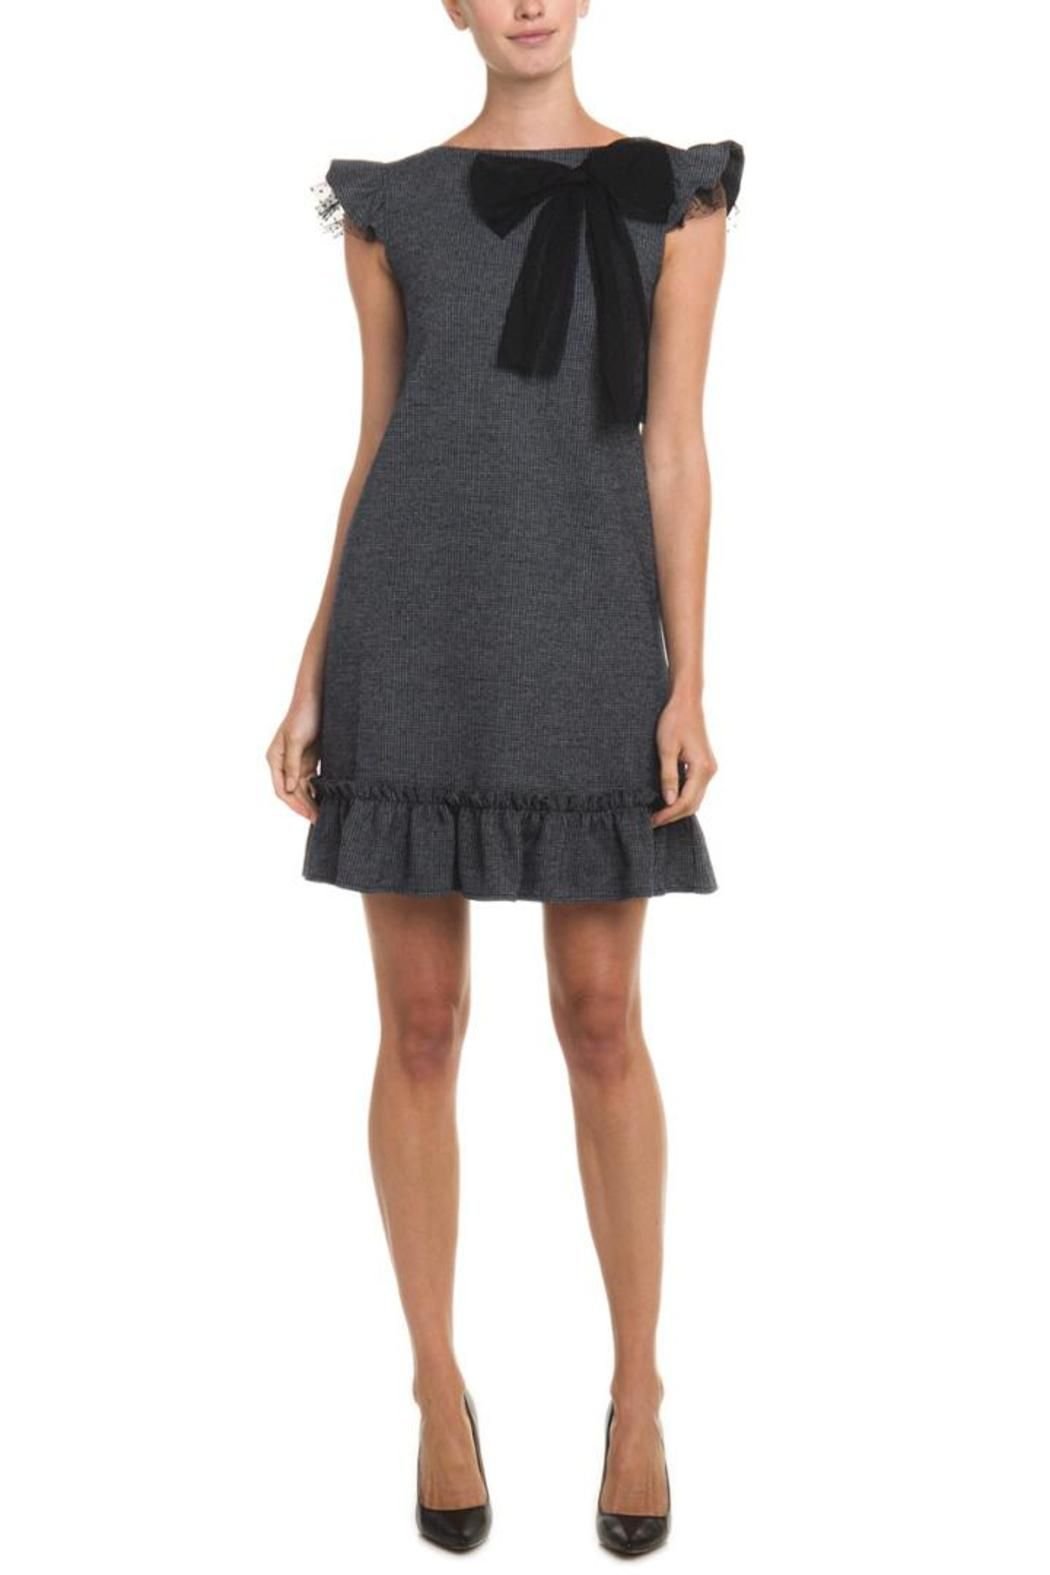 Red valentino grey bow dress tulle bows black heels and houndstooth